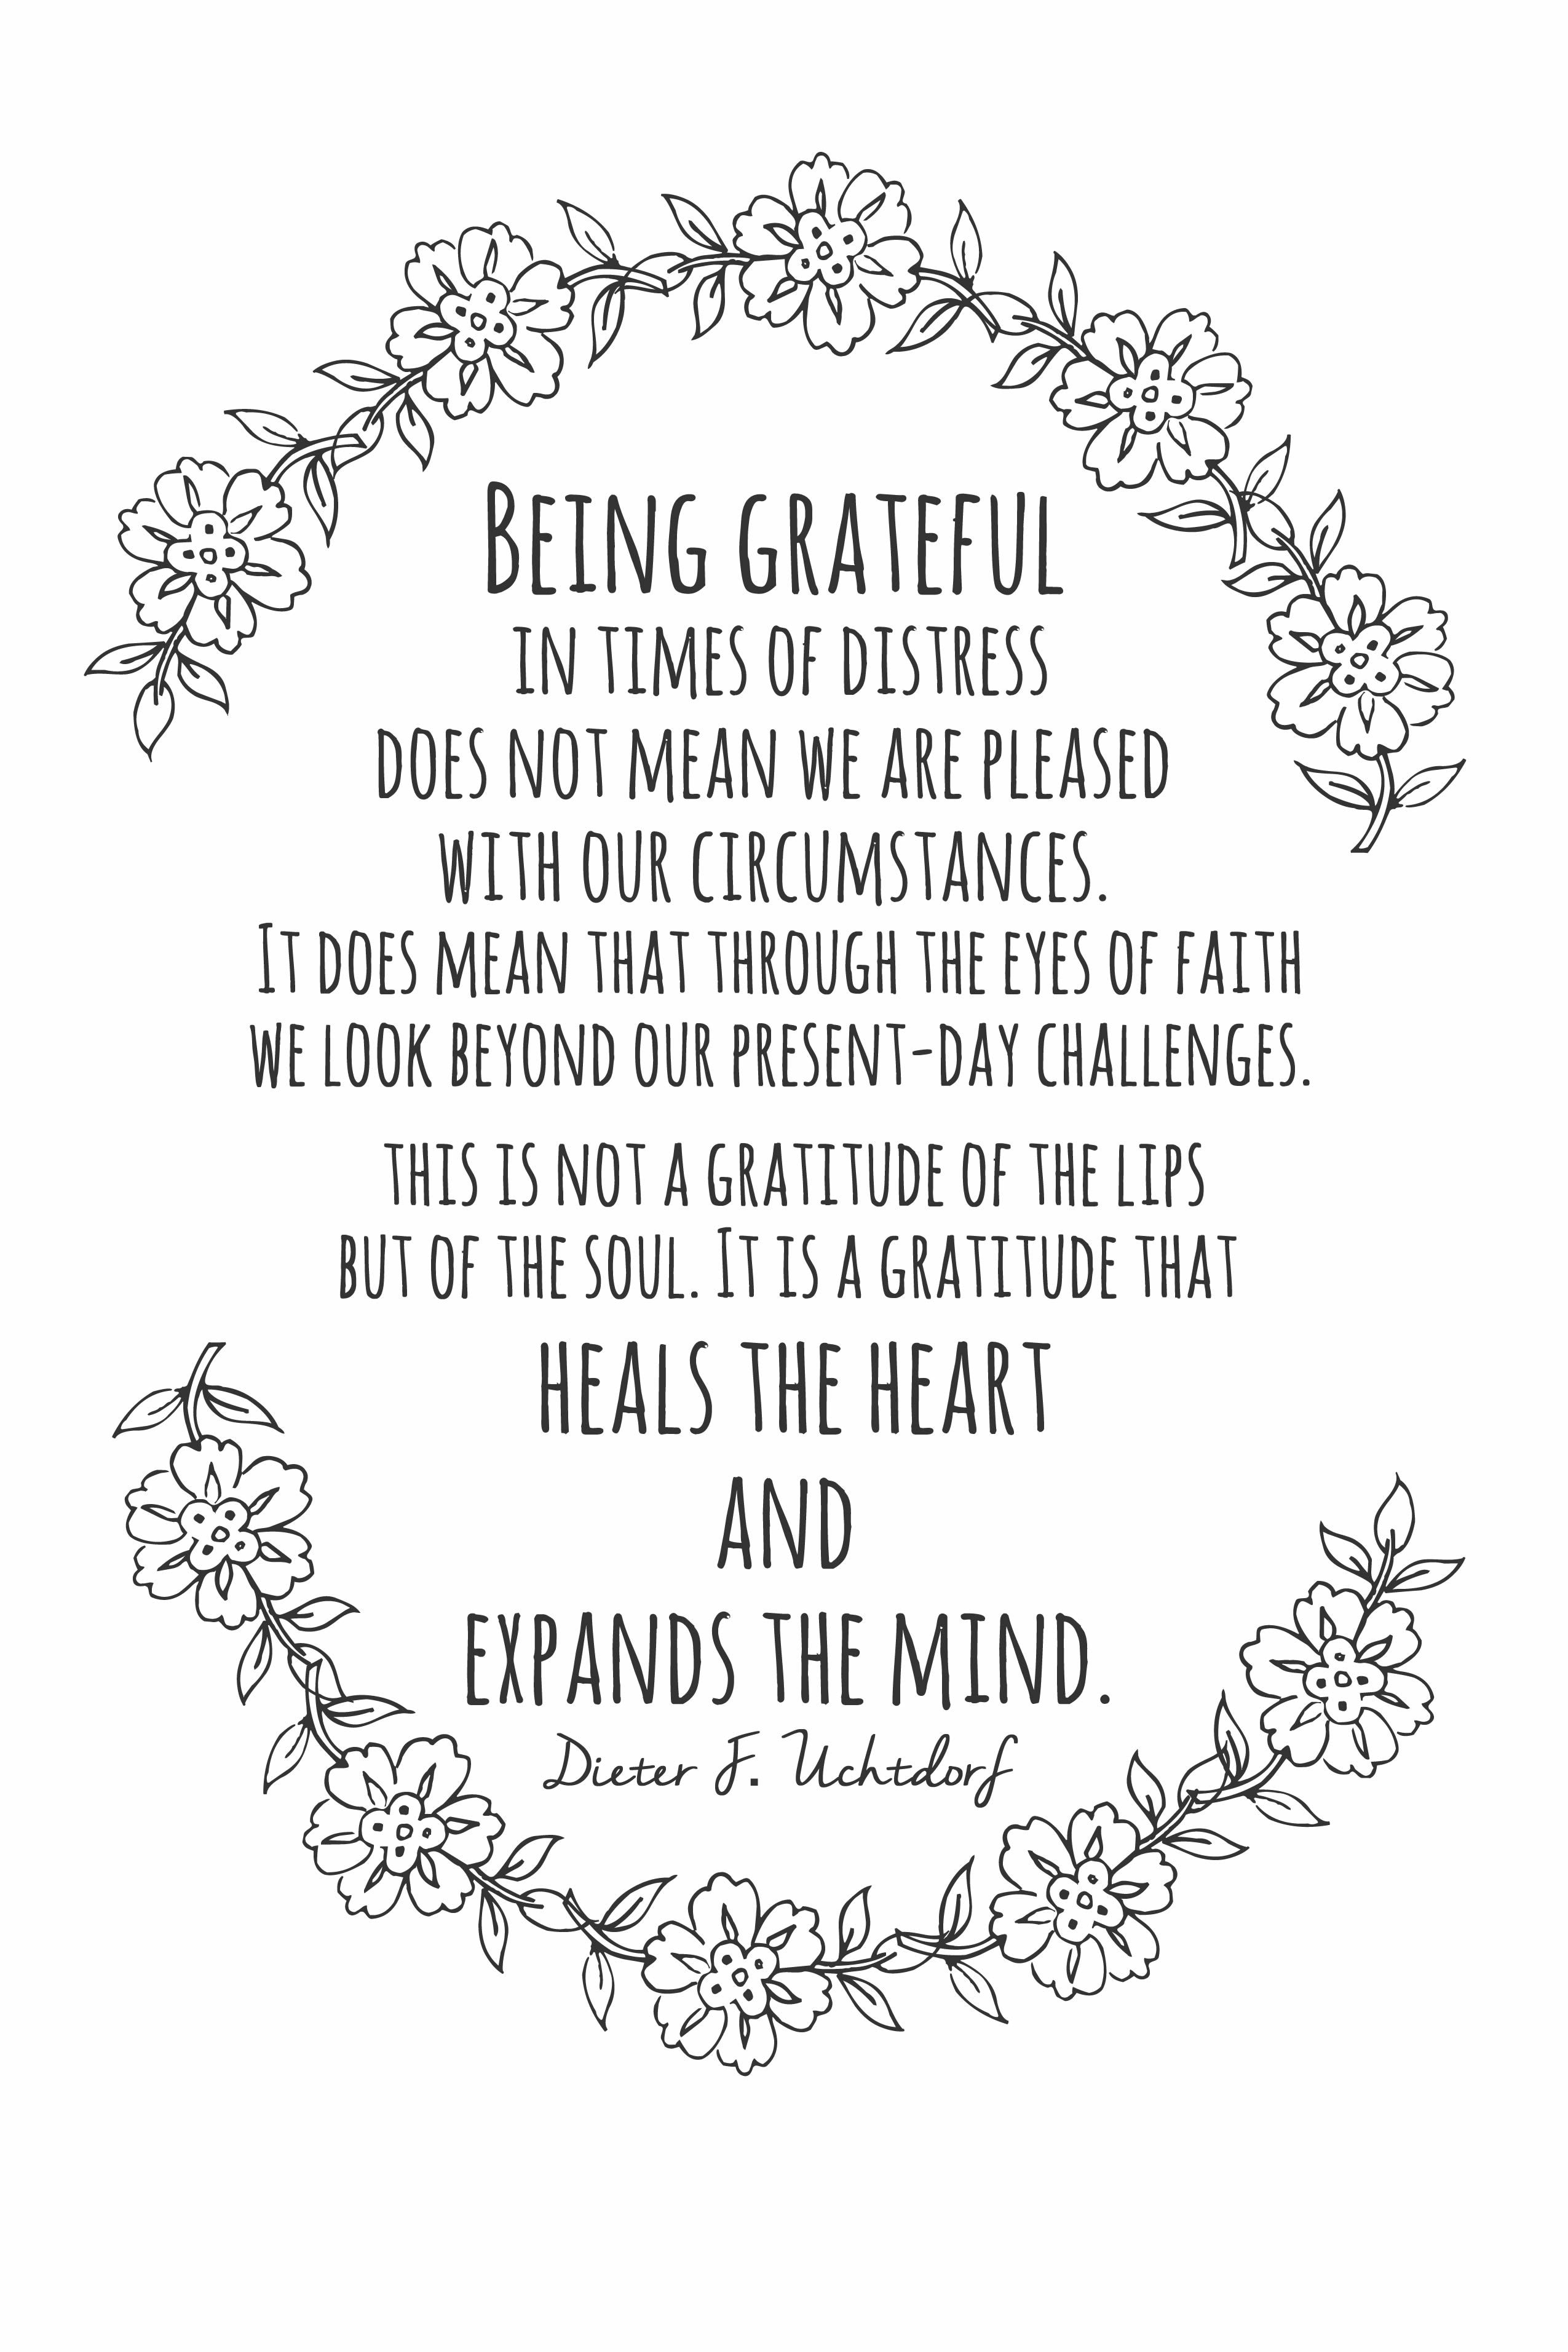 On Being Grateful President Dieter F Uchtdorf Grateful Quotes Quotable Quotes Church Quotes